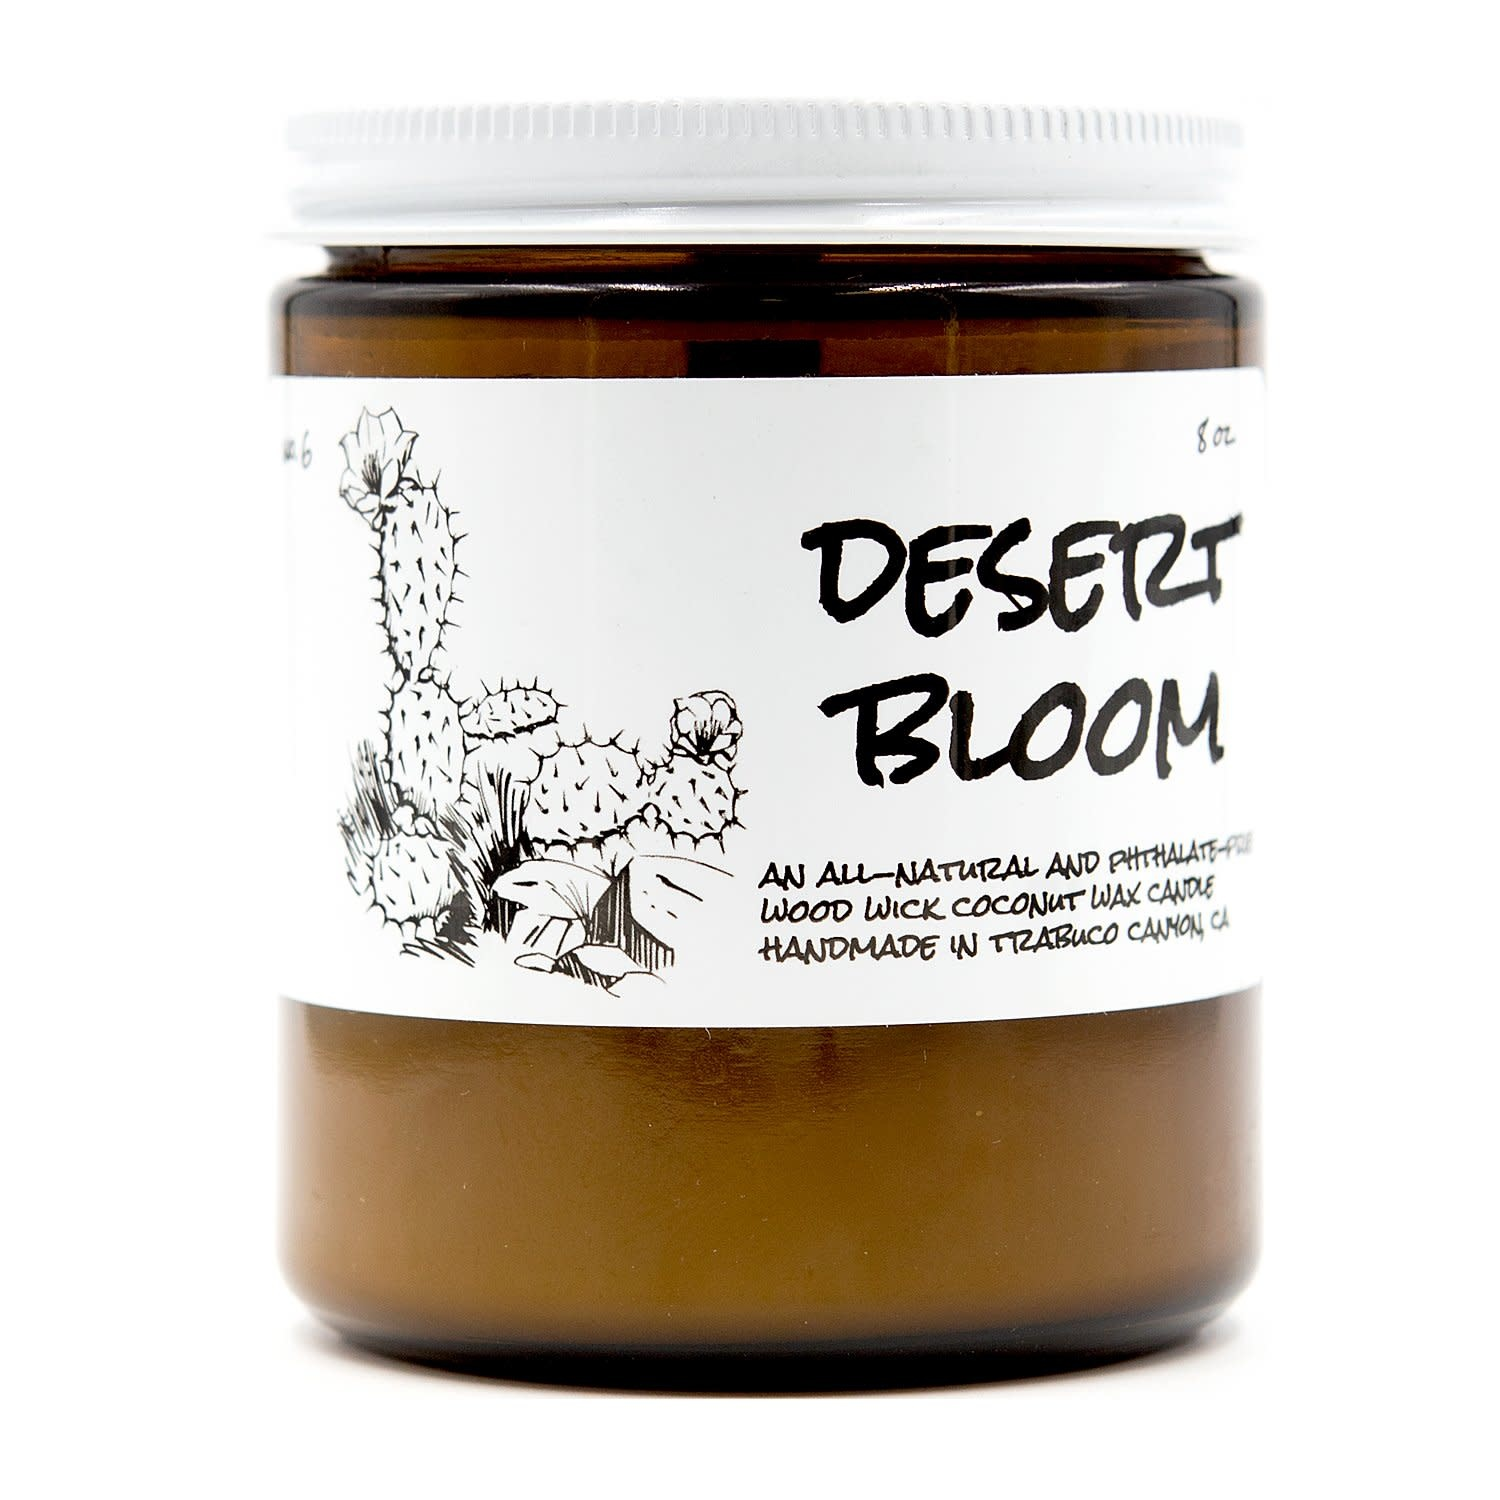 Birdbath BirdBath Desert Bloom 8oz Candle